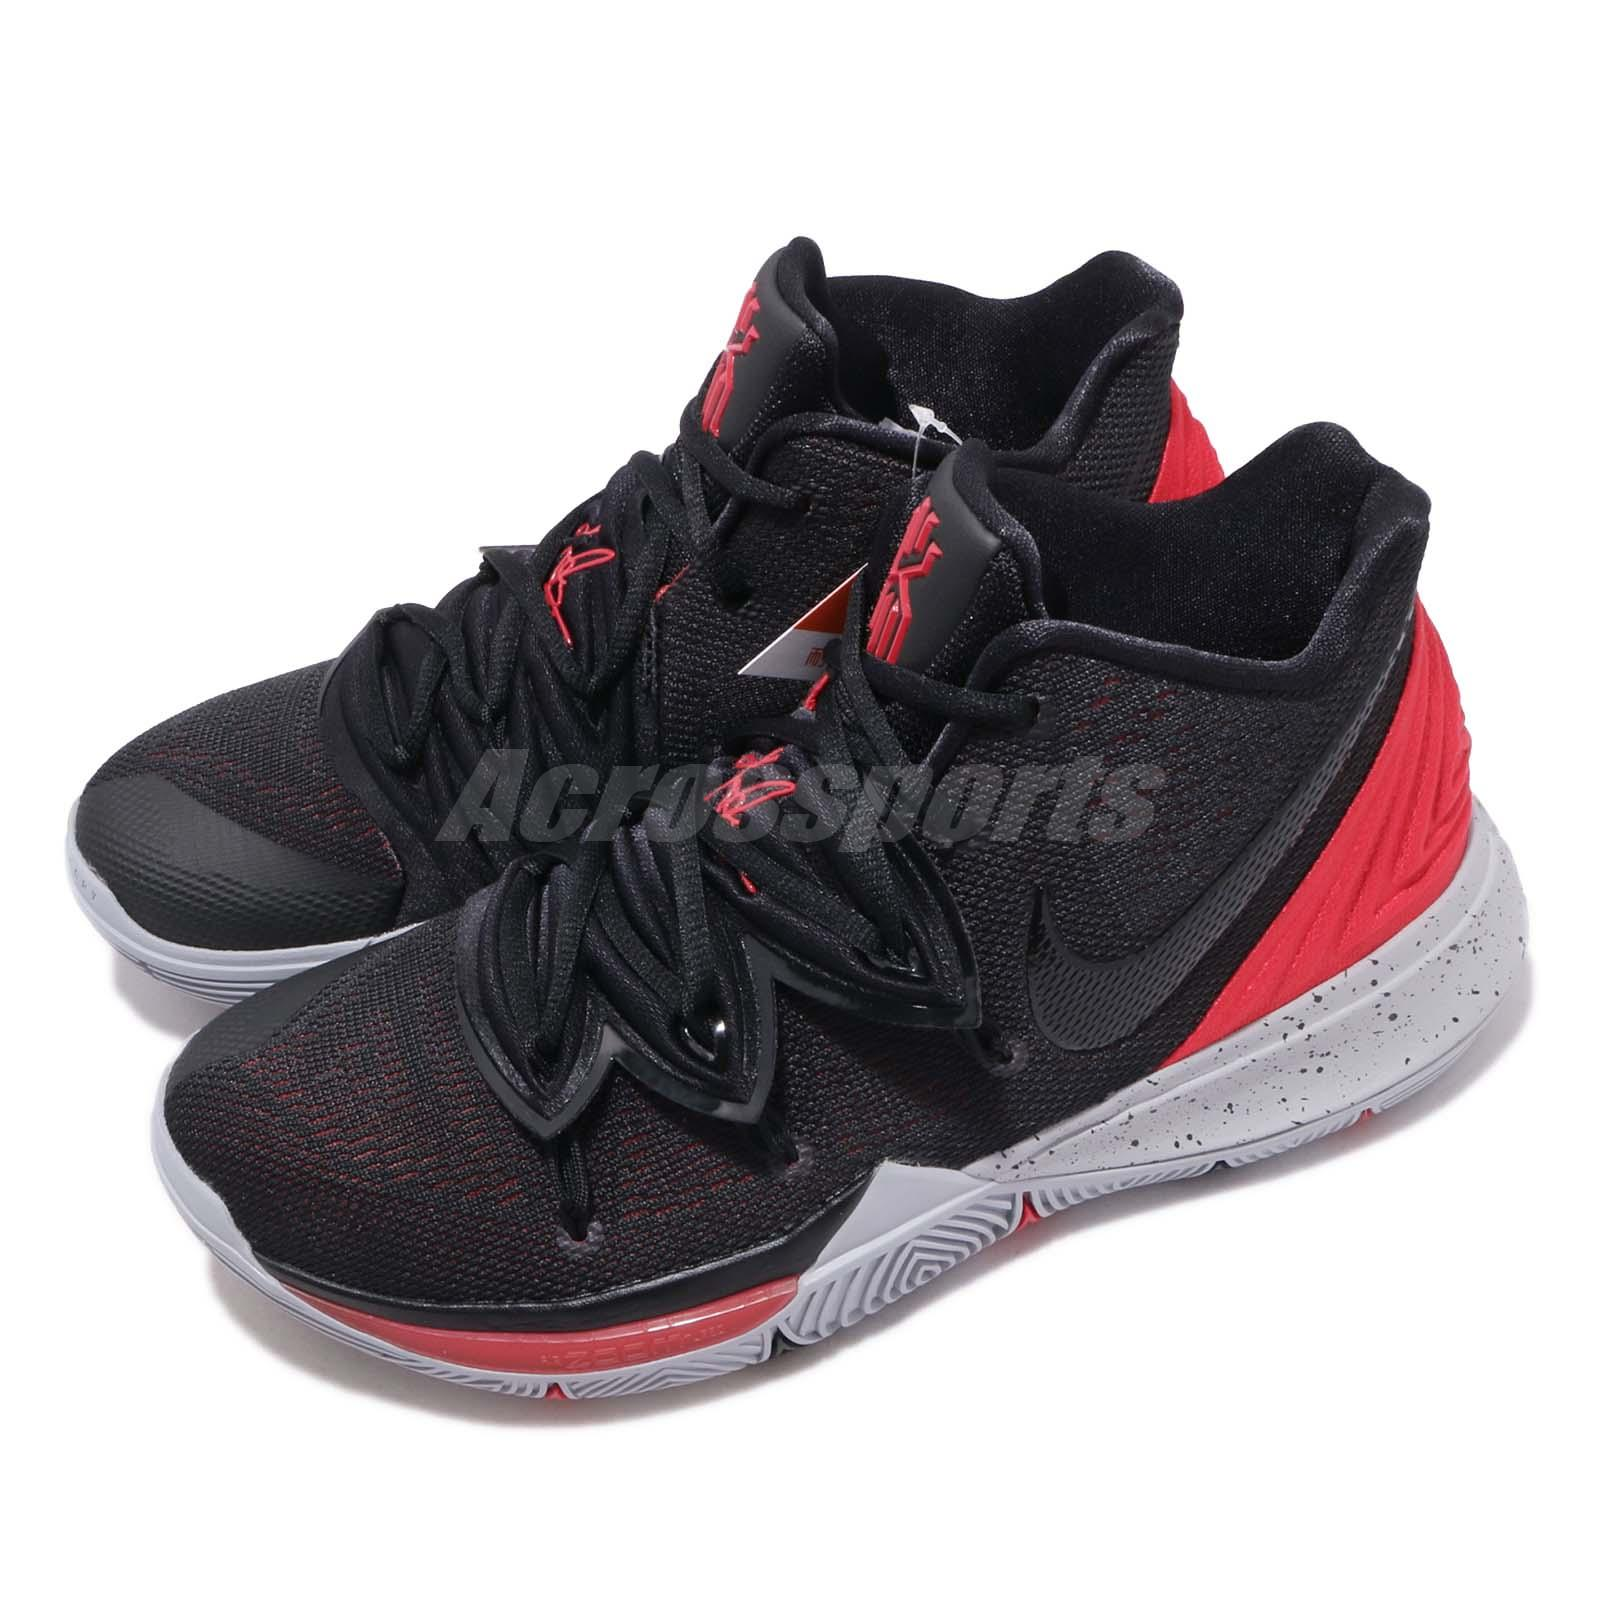 a054b6096c70b Details about Nike Kyrie 5 EP Irving University Red Black Bred Men Basketball  Shoes AO2919-600